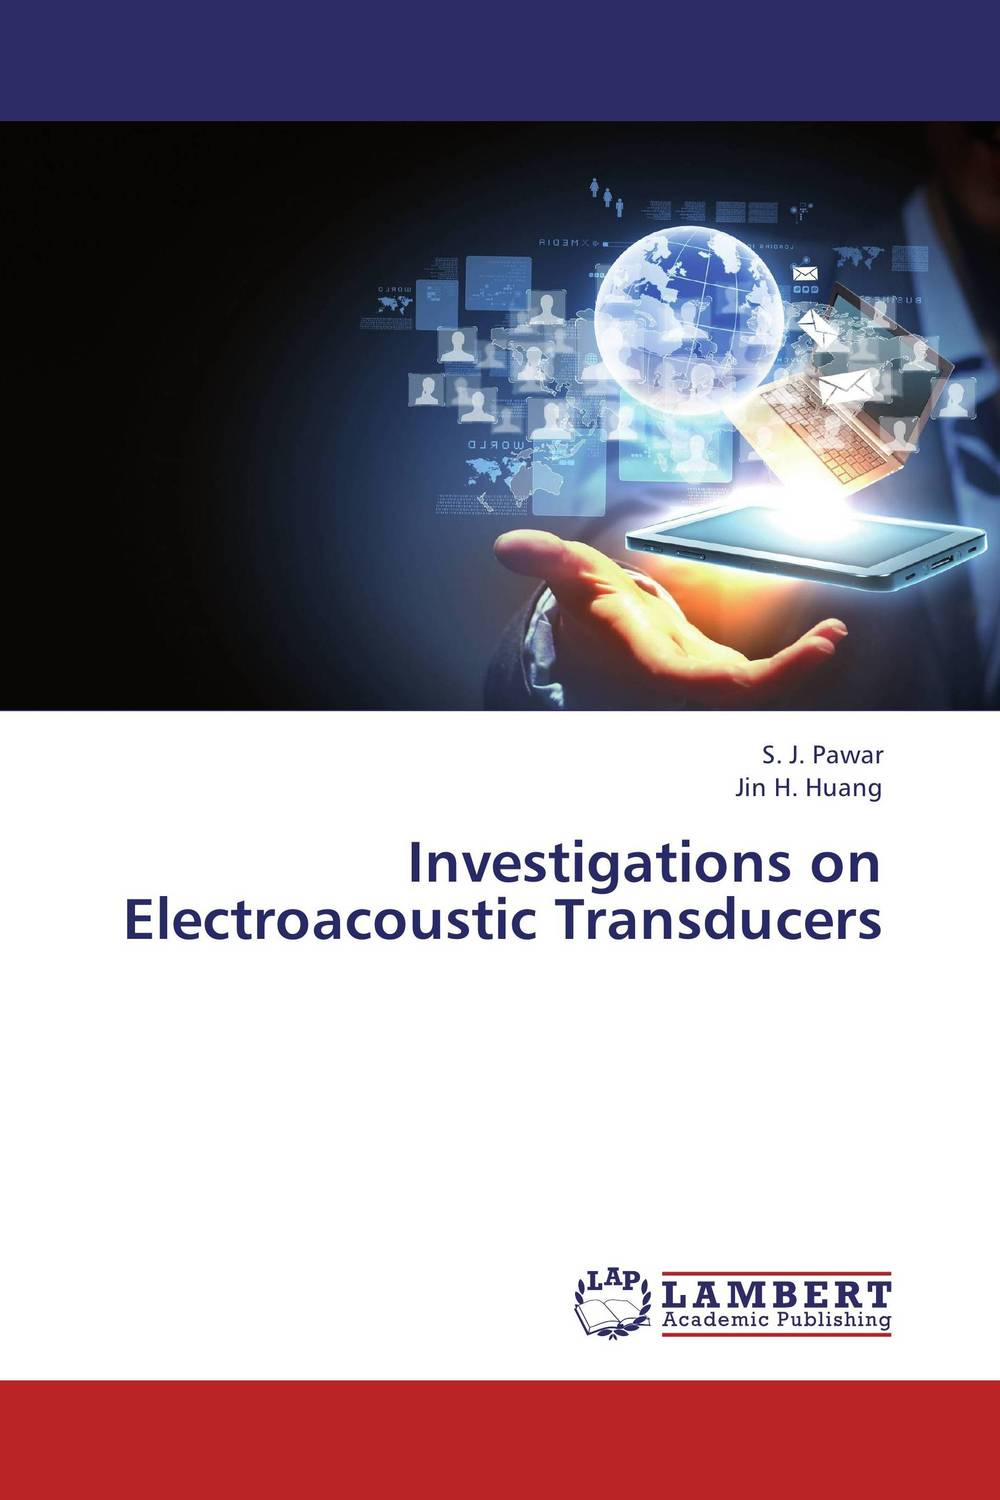 Investigations on Electroacoustic Transducers s j pawar and jin h huang investigations on electroacoustic transducers